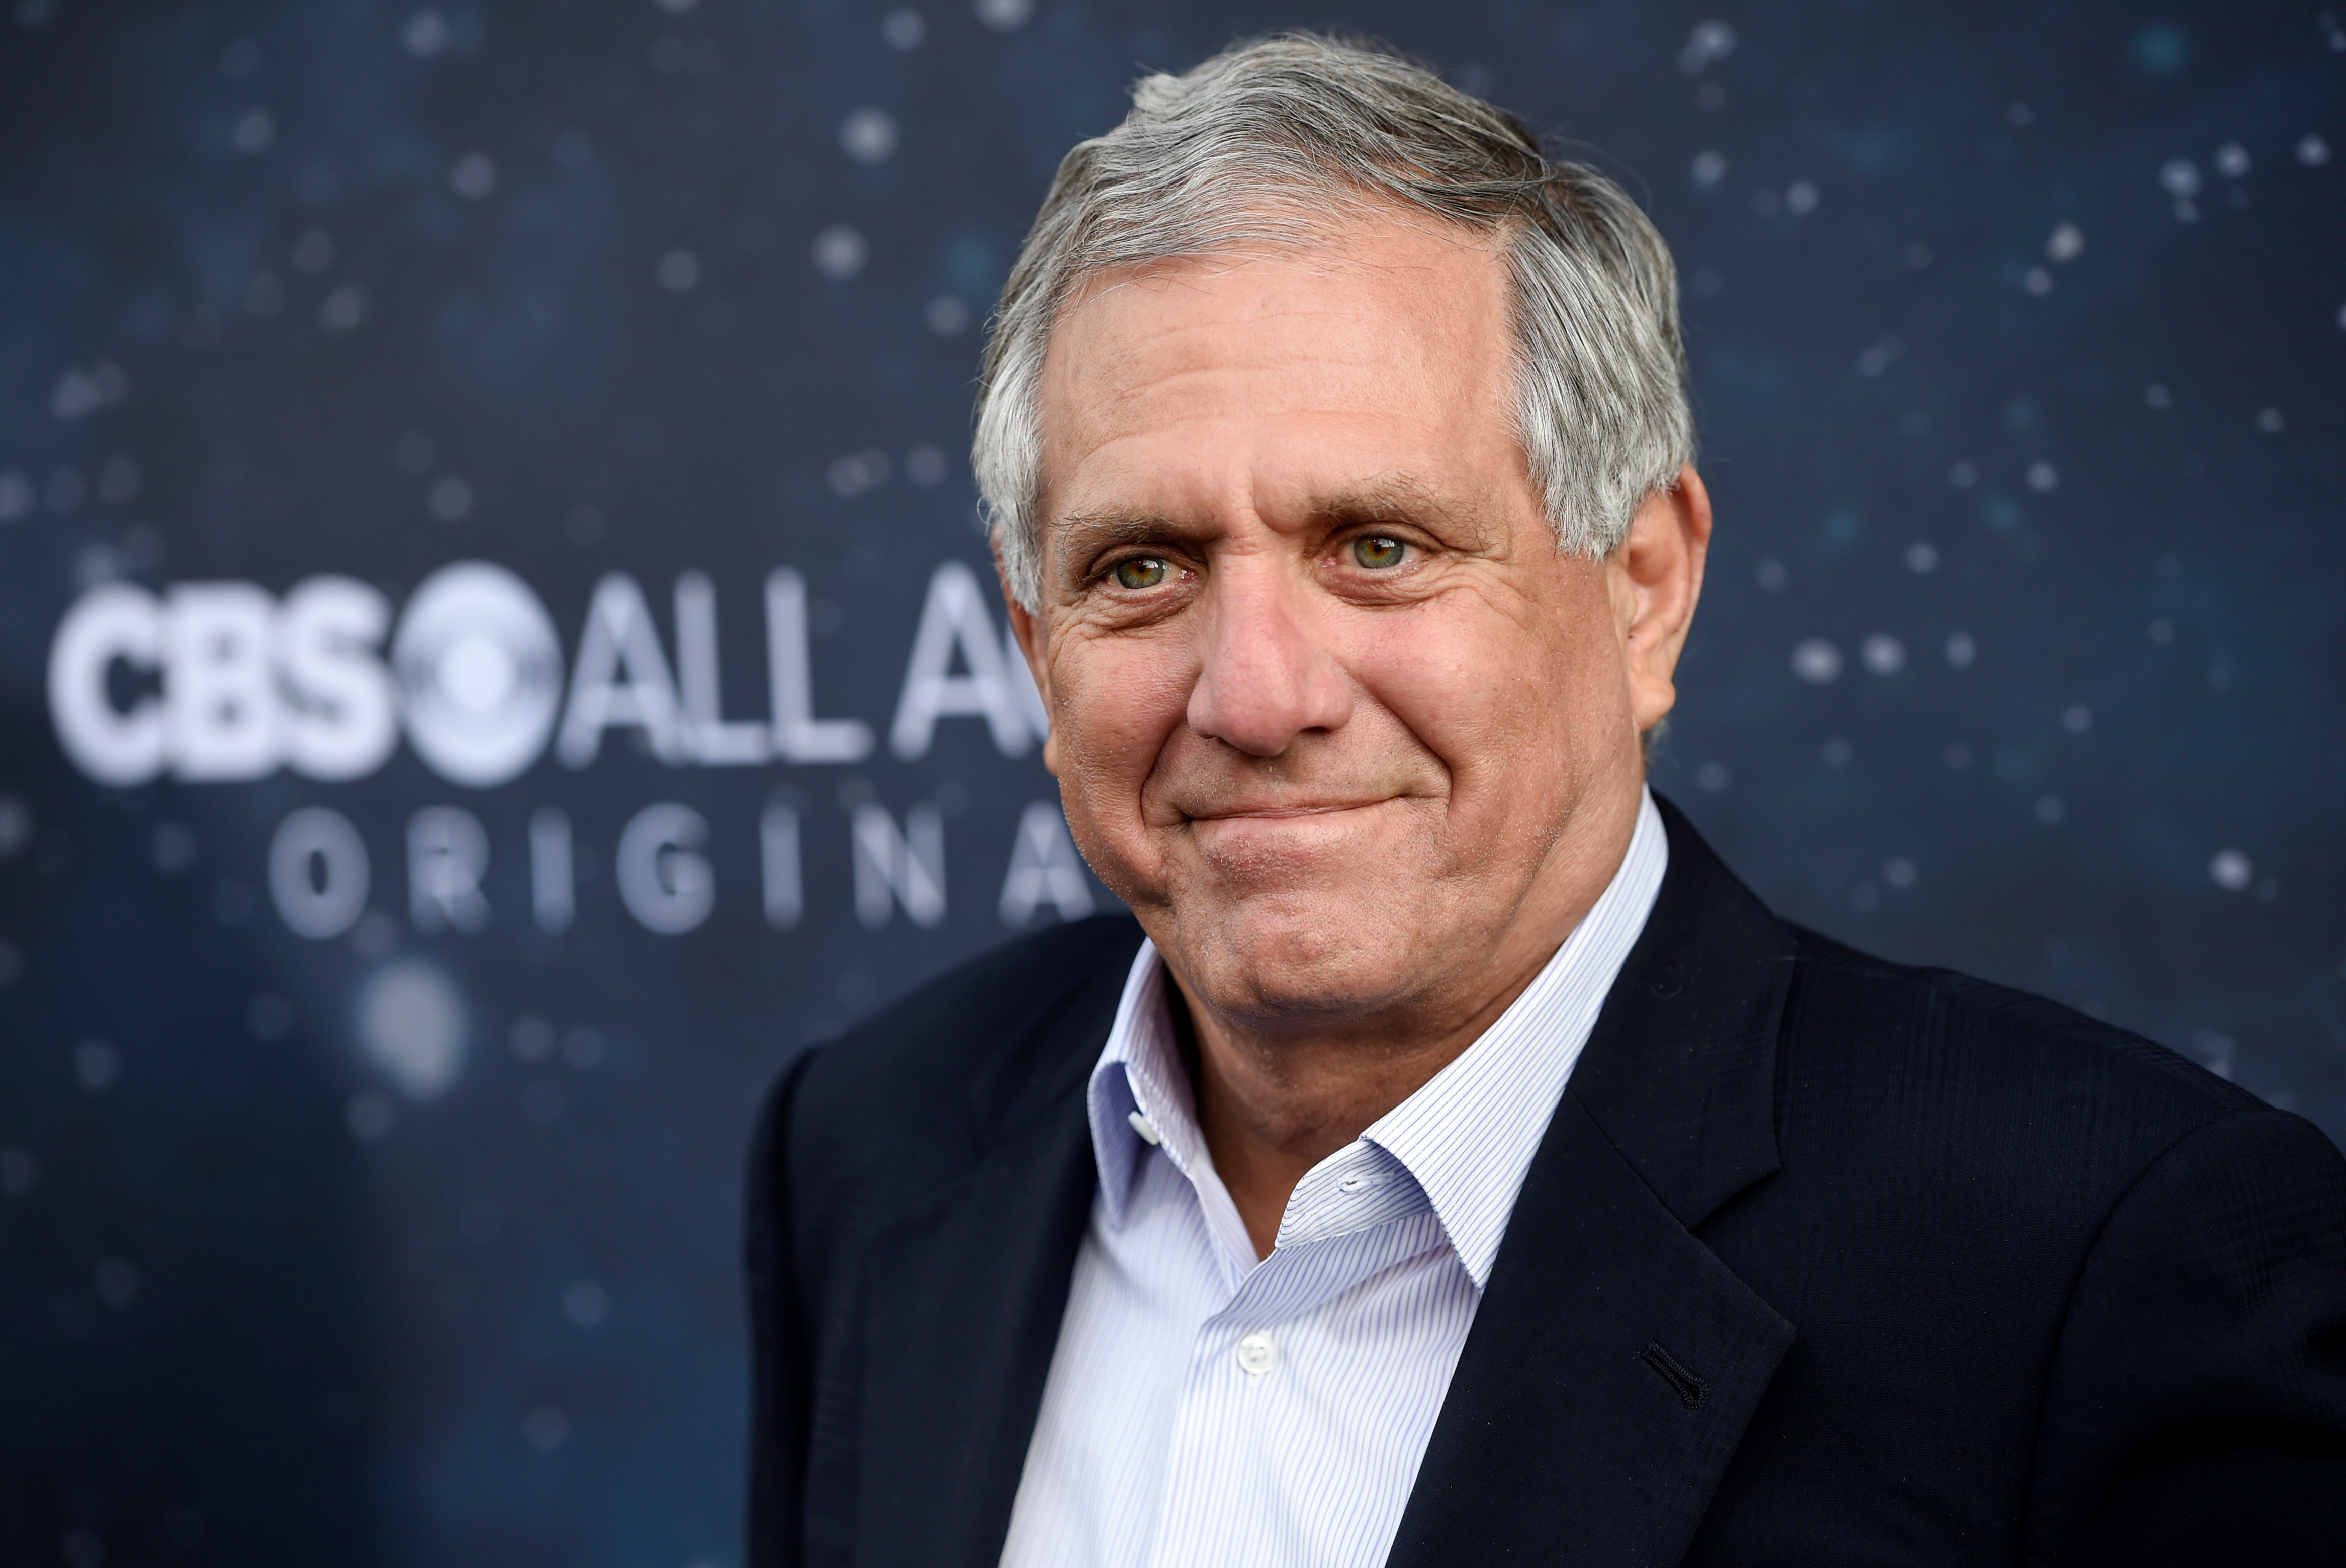 Les Moonves, chairman and CEO of CBS Corporation, poses at the premiere of the new television series  Star Trek: Discovery , in Los Angeles, LA Premiere of  Star Trek: Discovery , Los Angeles, September 19, 2017.